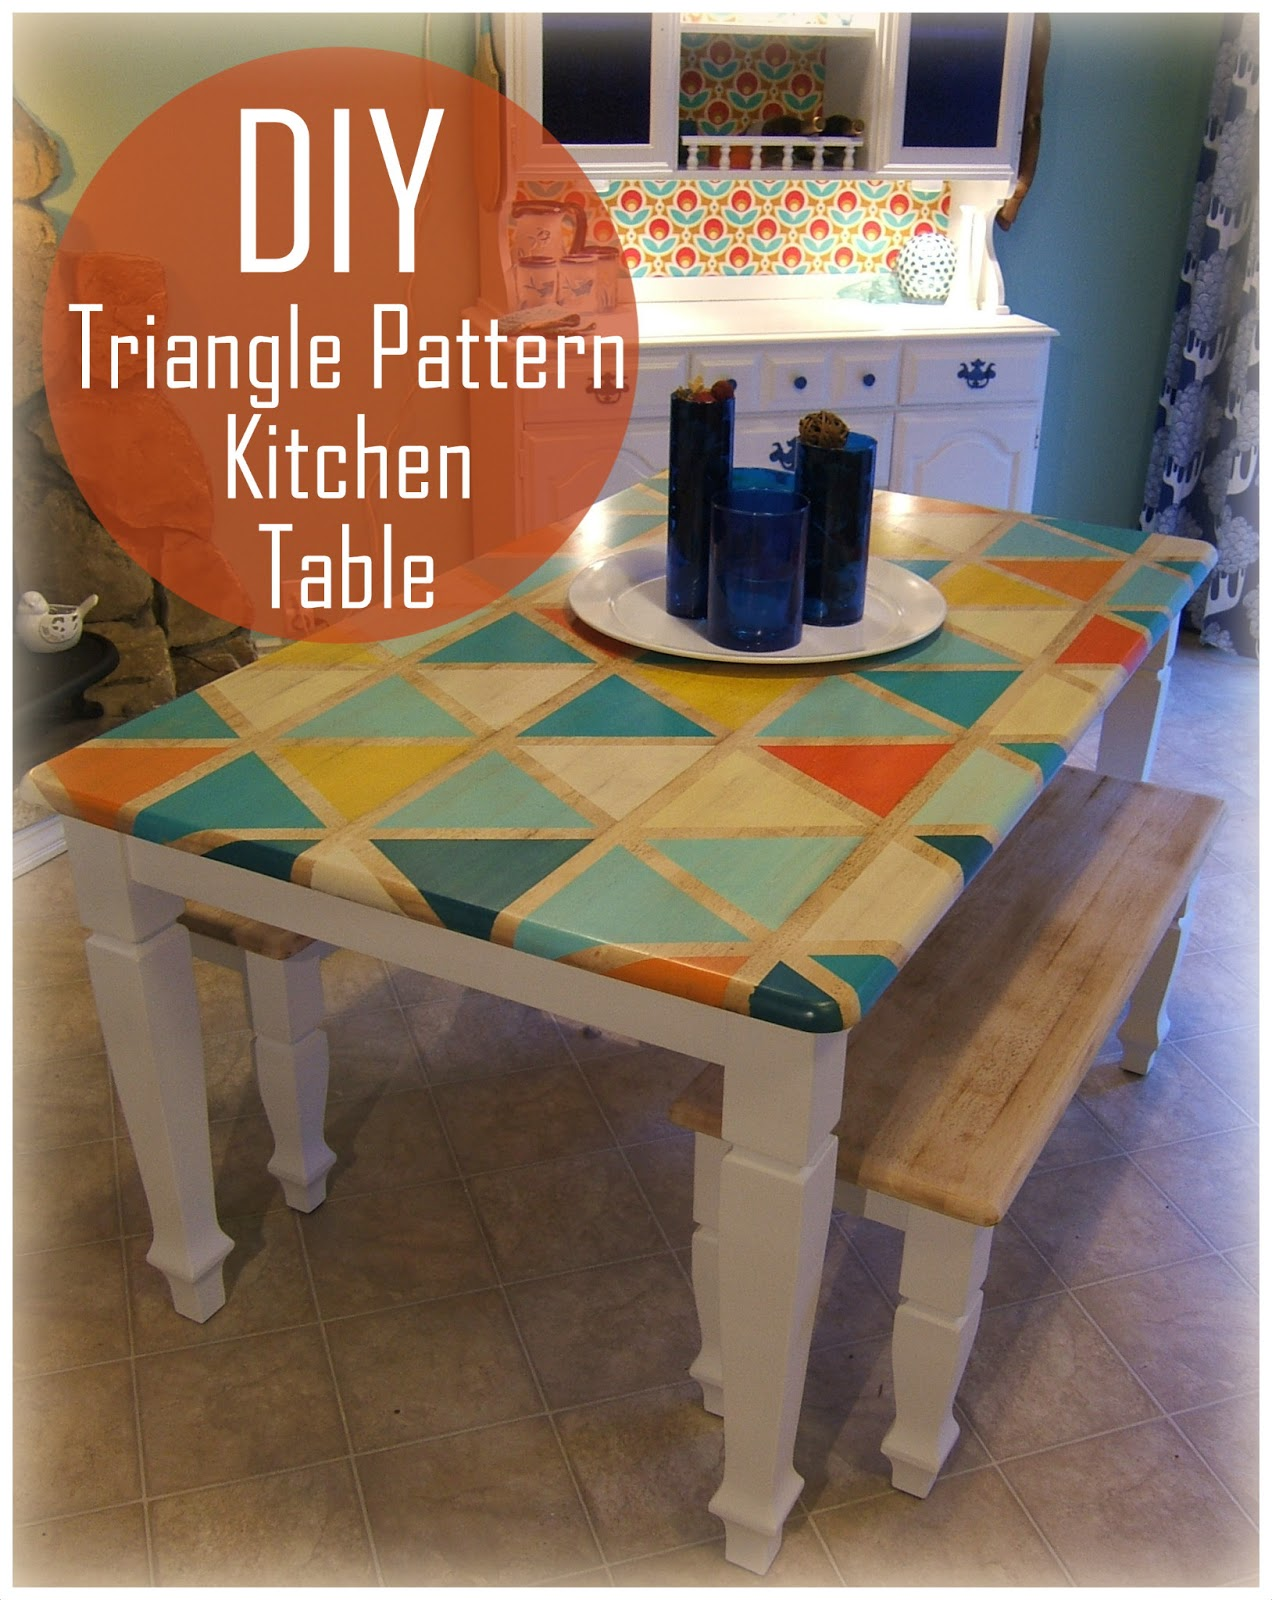 how to diy triangle pattern kitchen tabletop. Black Bedroom Furniture Sets. Home Design Ideas